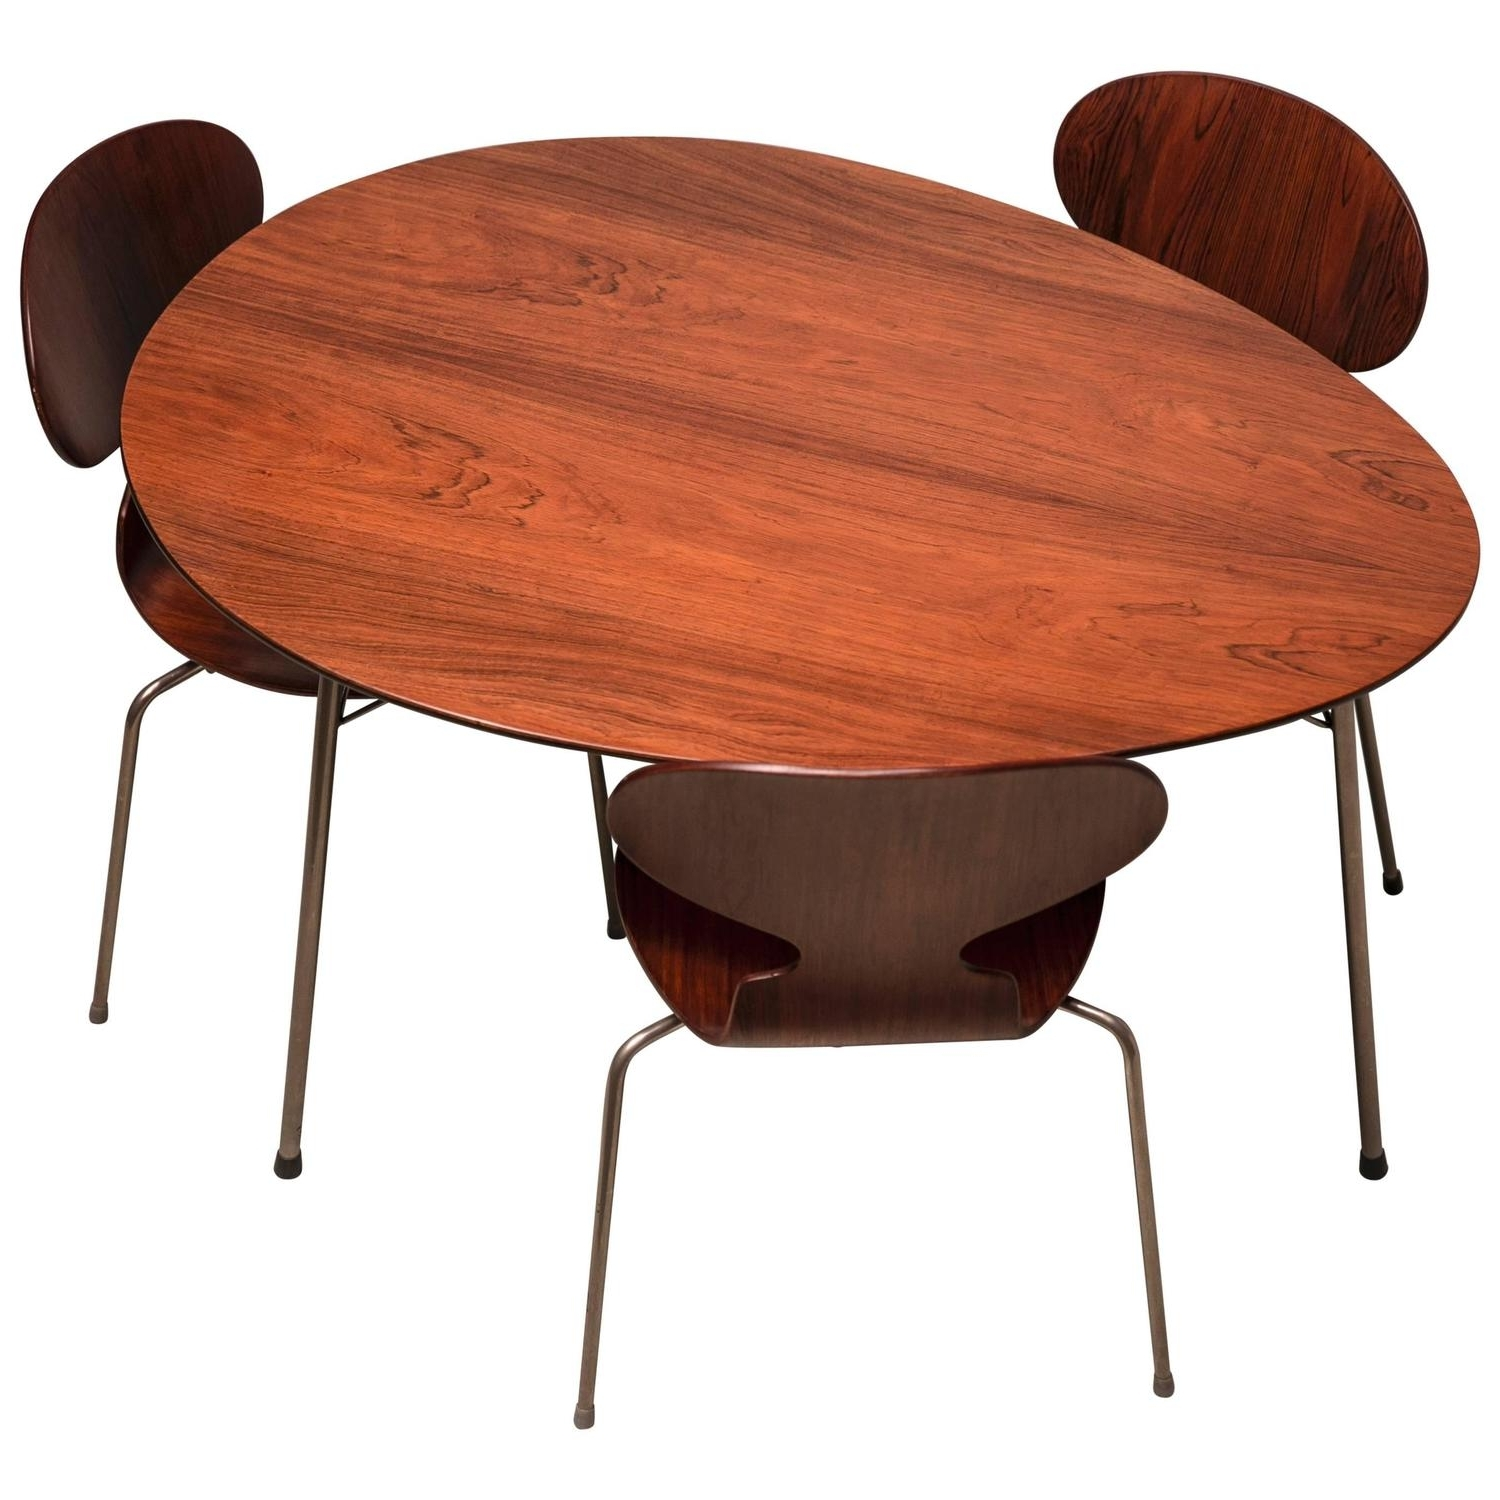 Most Recent Mid Century Modern Egg Tables Throughout Exceptional Early Brazilian Rosewood Egg Table And Ant Chairs (View 7 of 20)